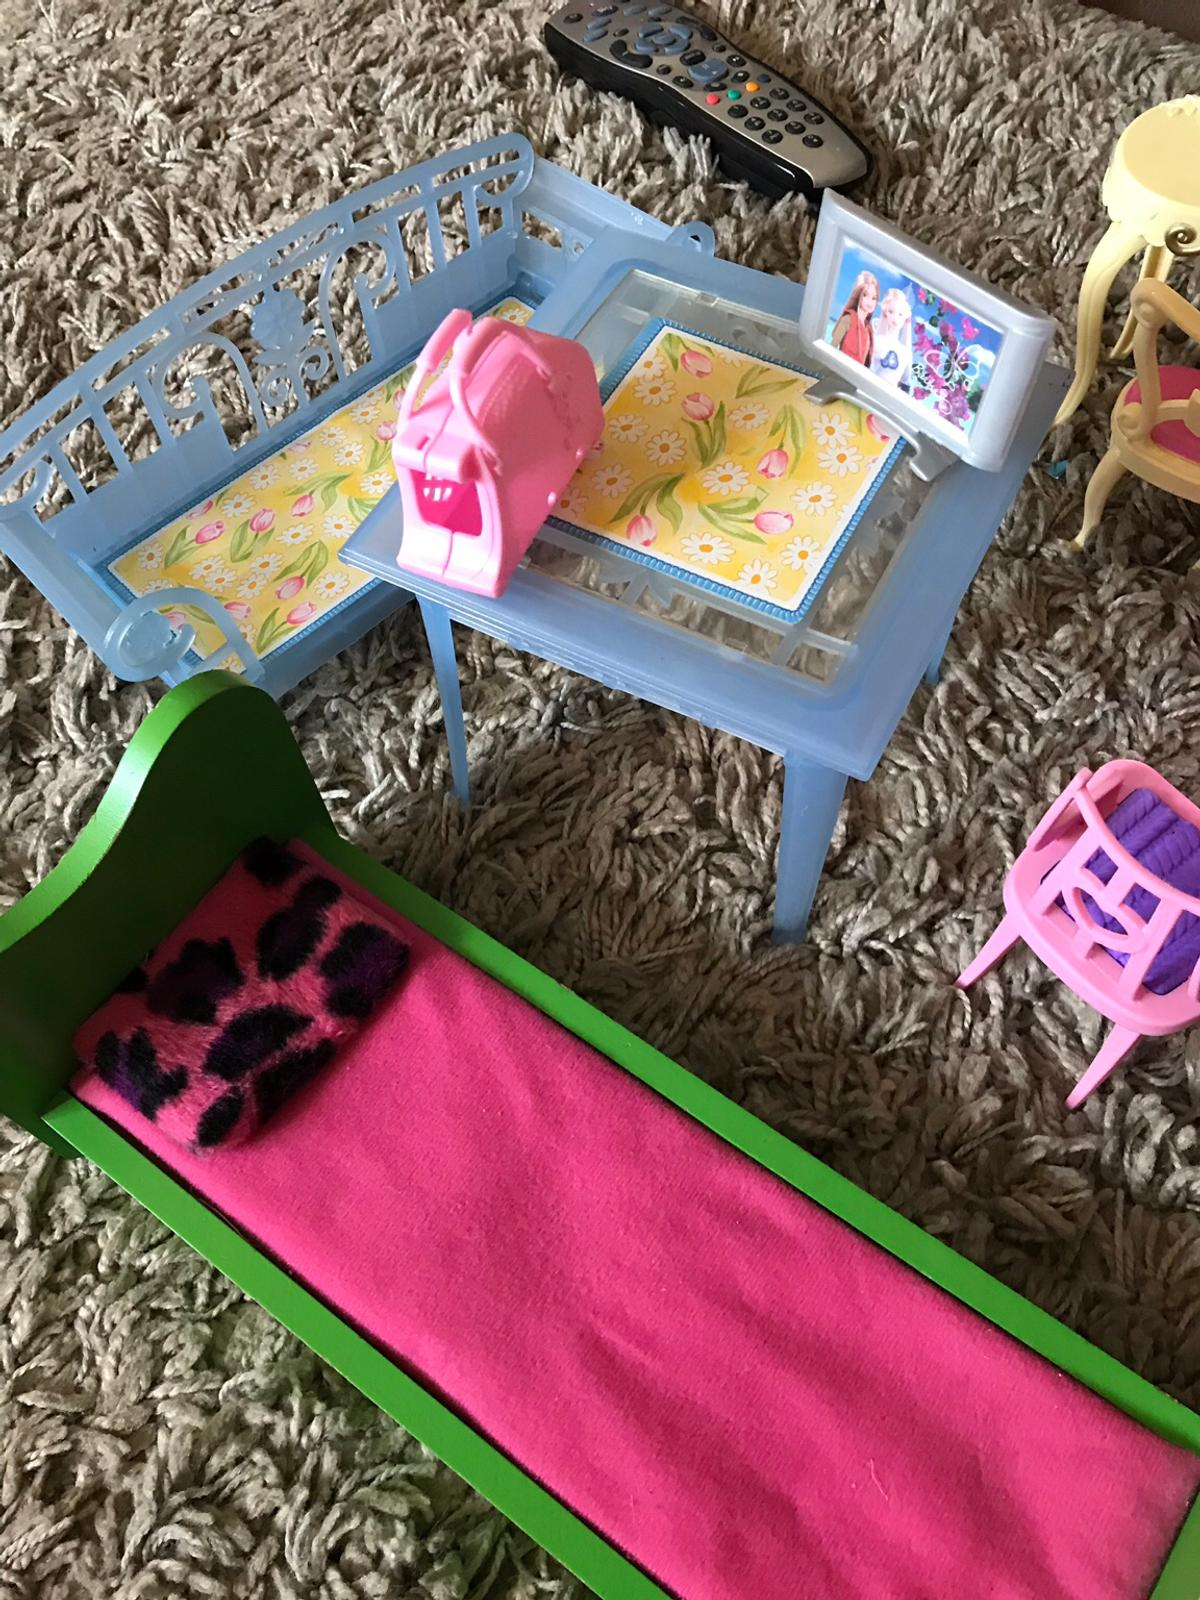 Astounding Barbie Doll Furniture Job Lot Pdpeps Interior Chair Design Pdpepsorg